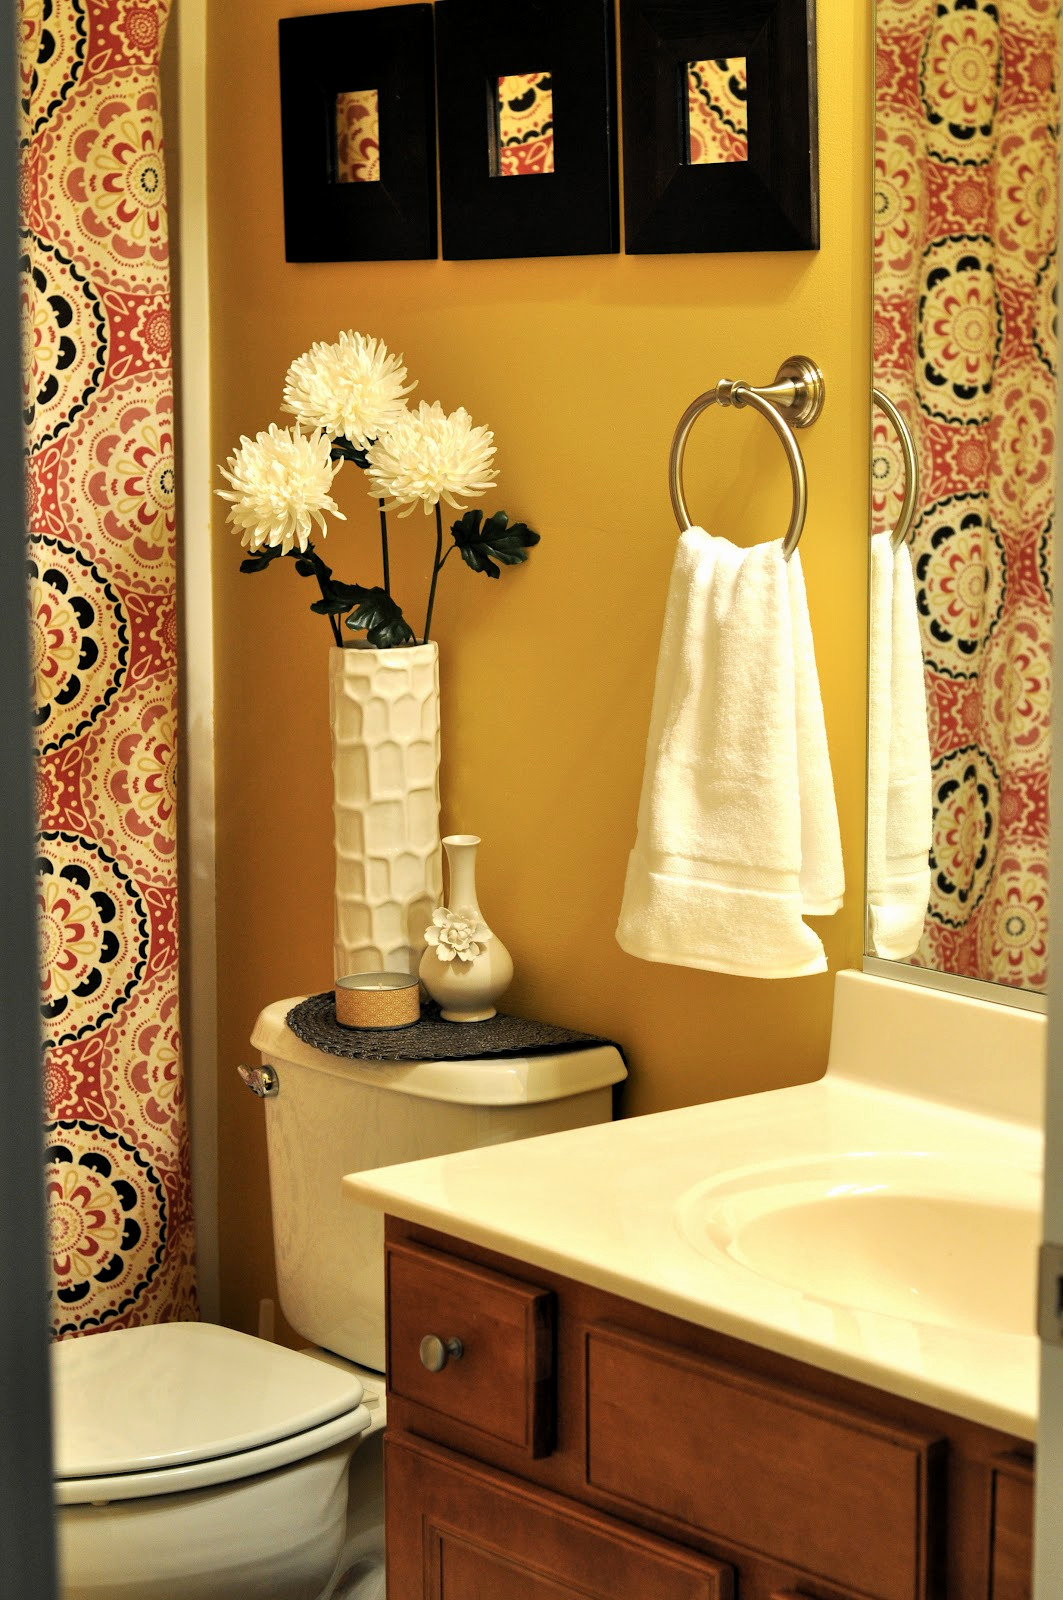 Ideas for Bathroom Decorating themes Inspirational Apartment Bathroom Decorating Ideas Marvelous Small themes